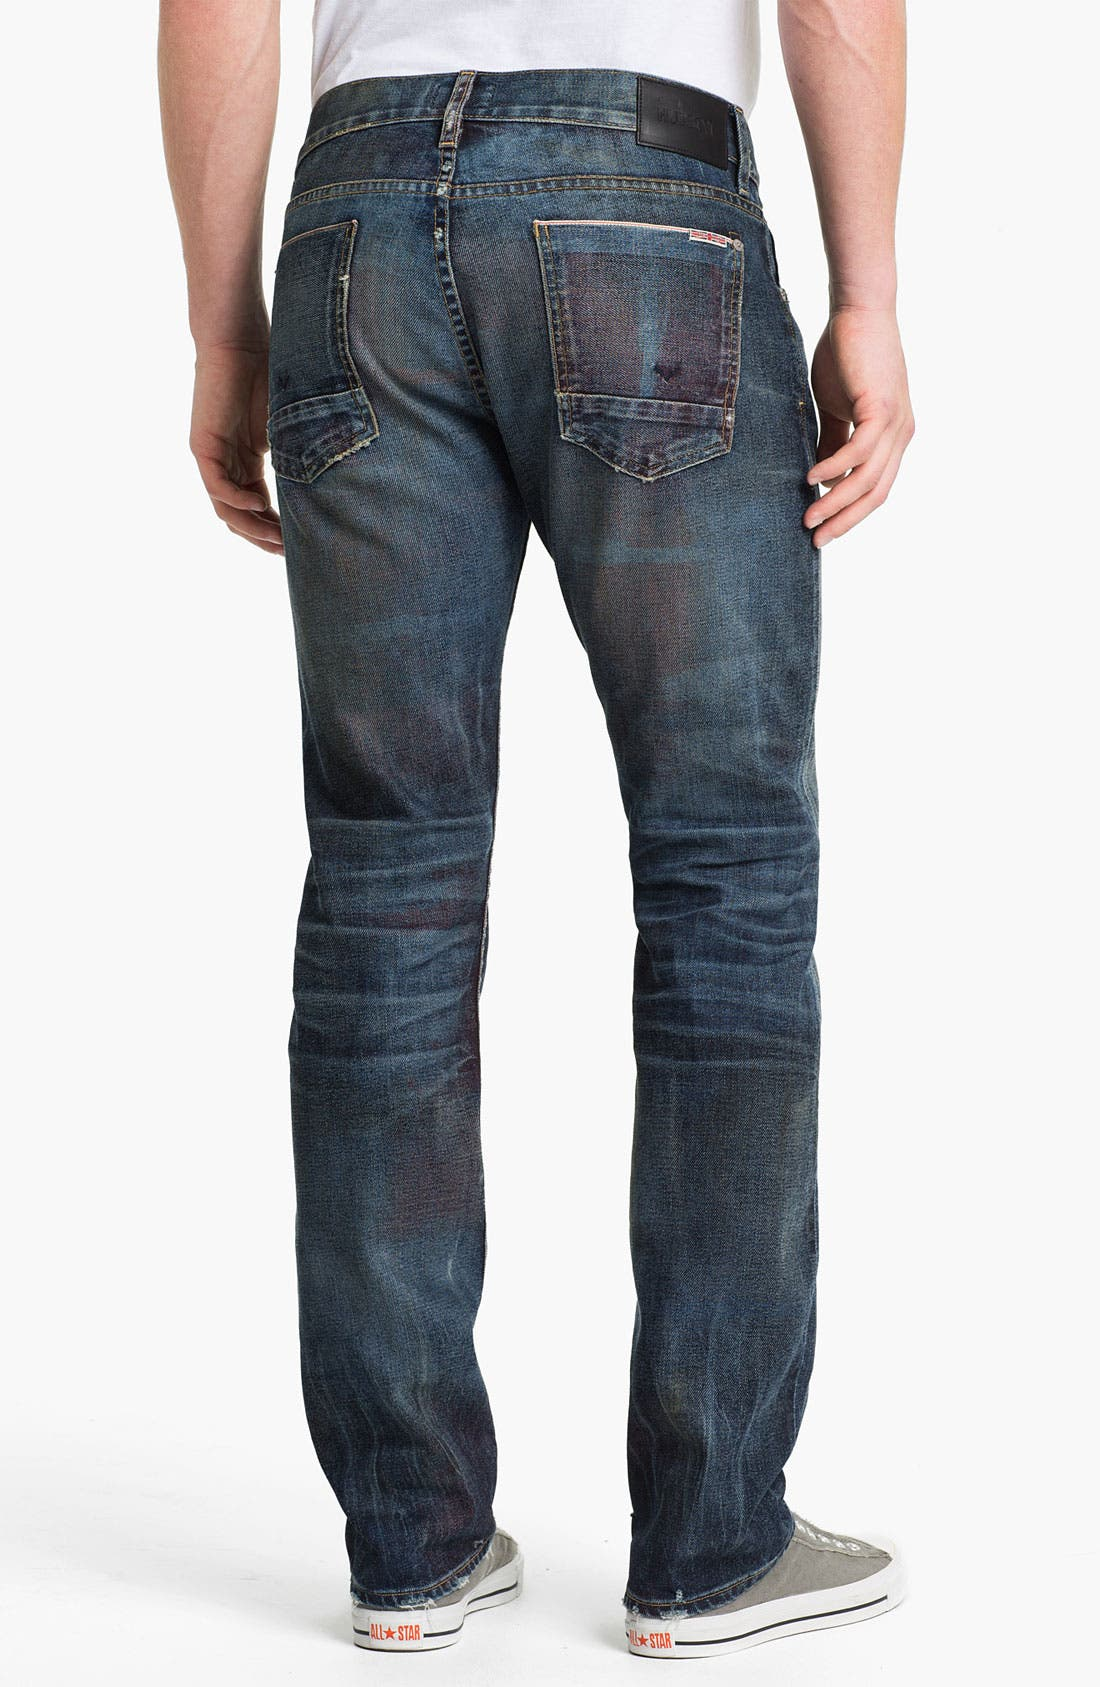 Main Image - Hudson 'Byron - 10th Anniversary Limited Edition' Selvedge Straight Leg Jeans (Royalty) (Nordstrom Exclusive)